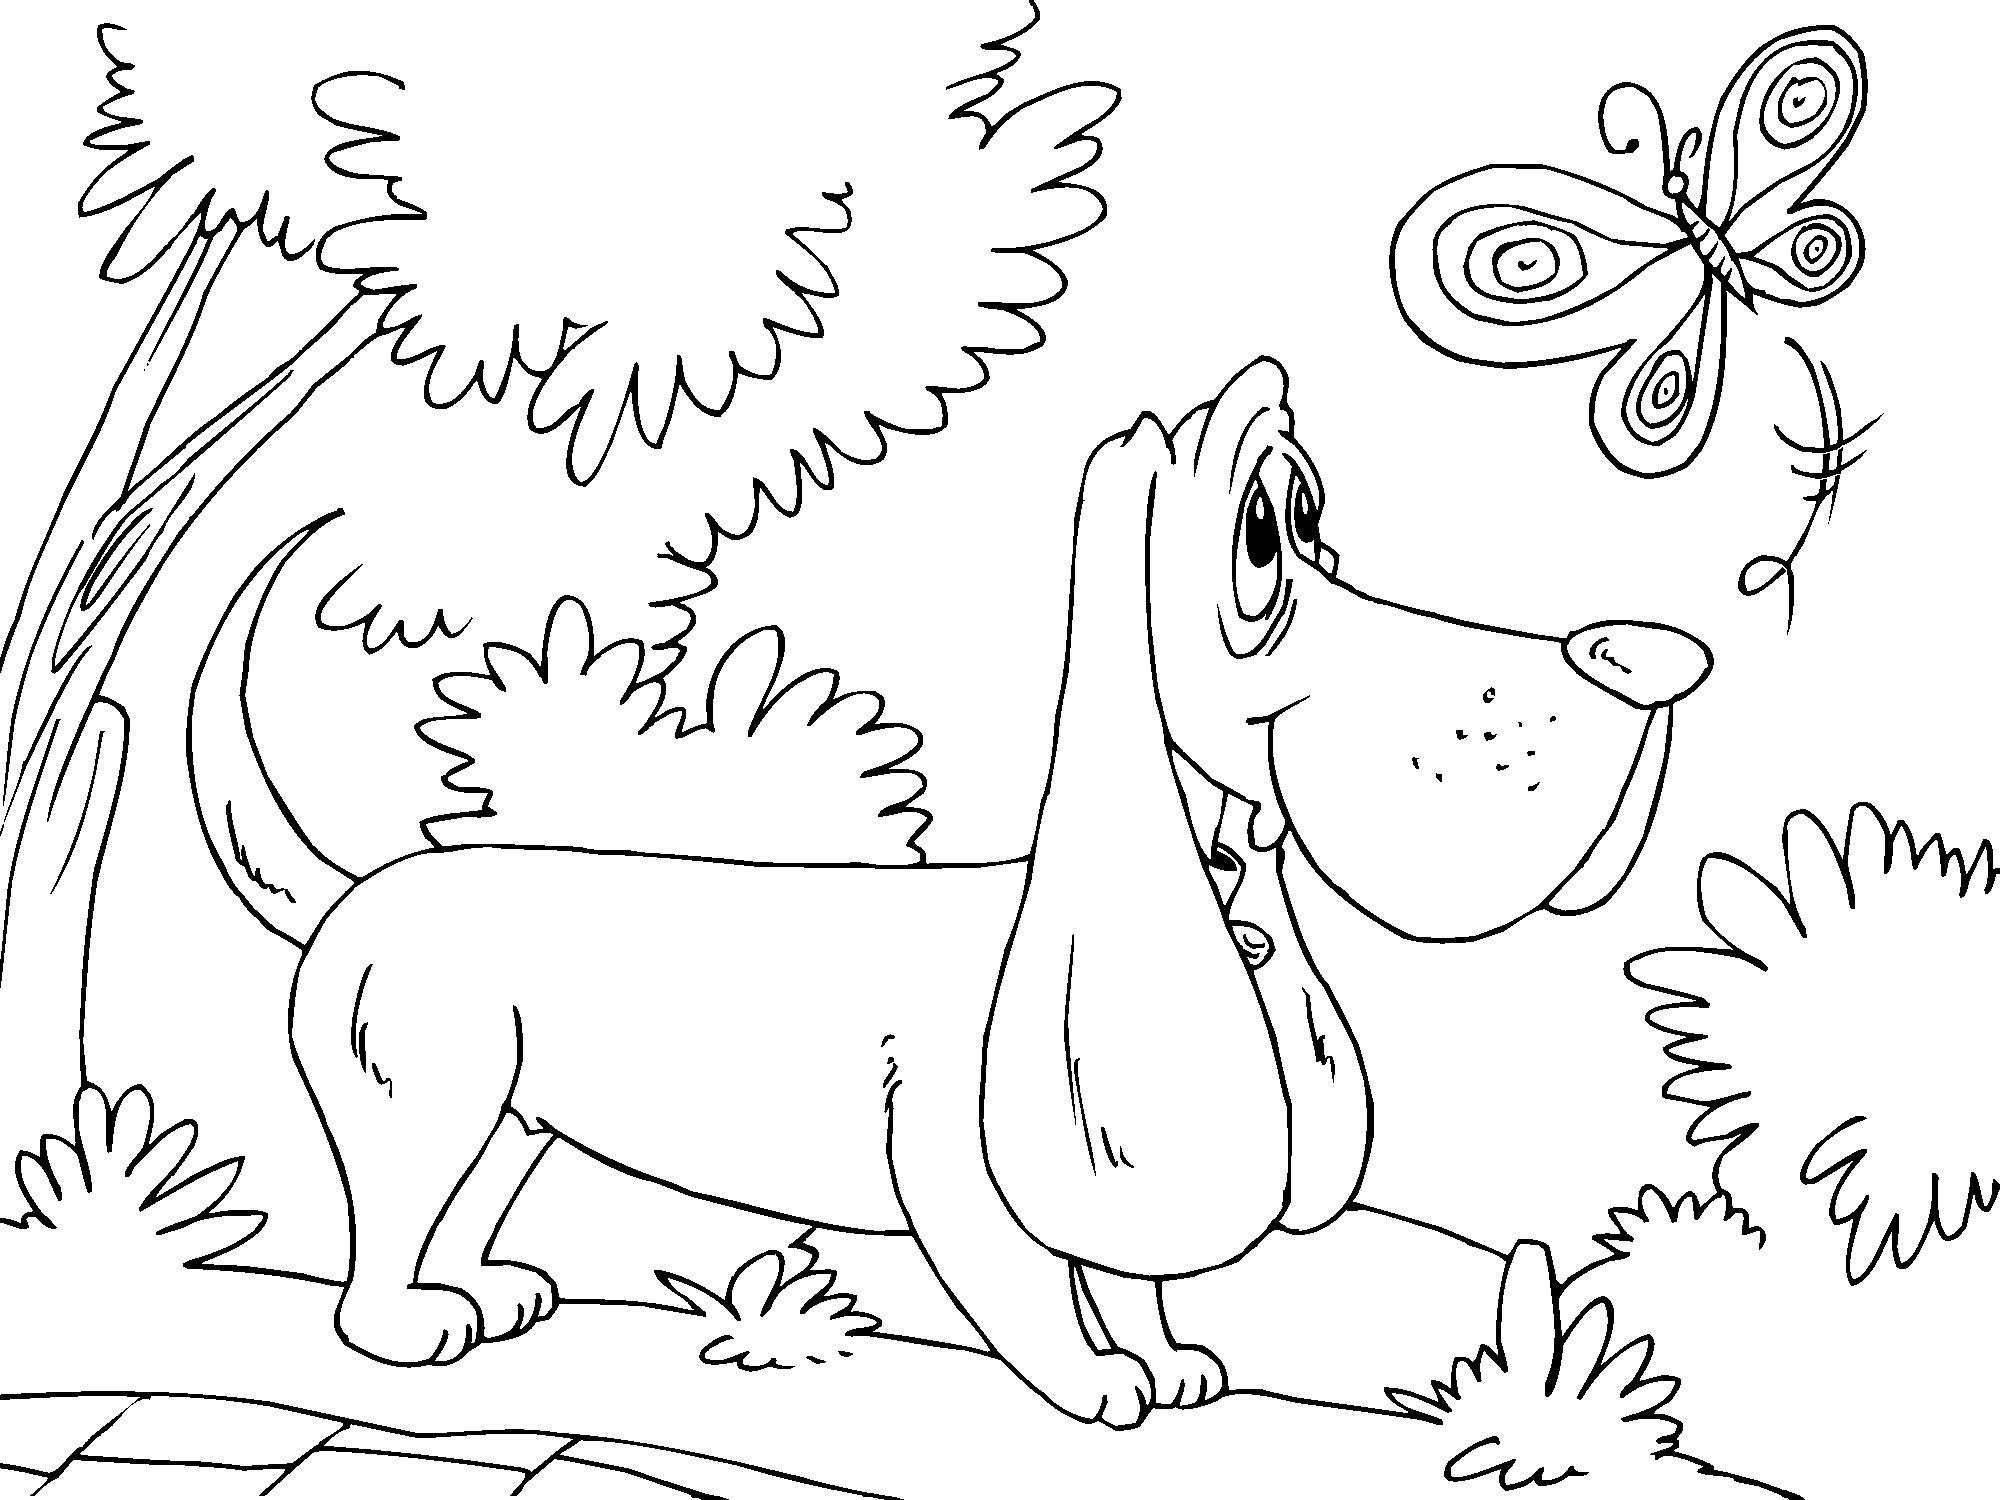 Dog And Butterfly Animals Adult Coloring Pages